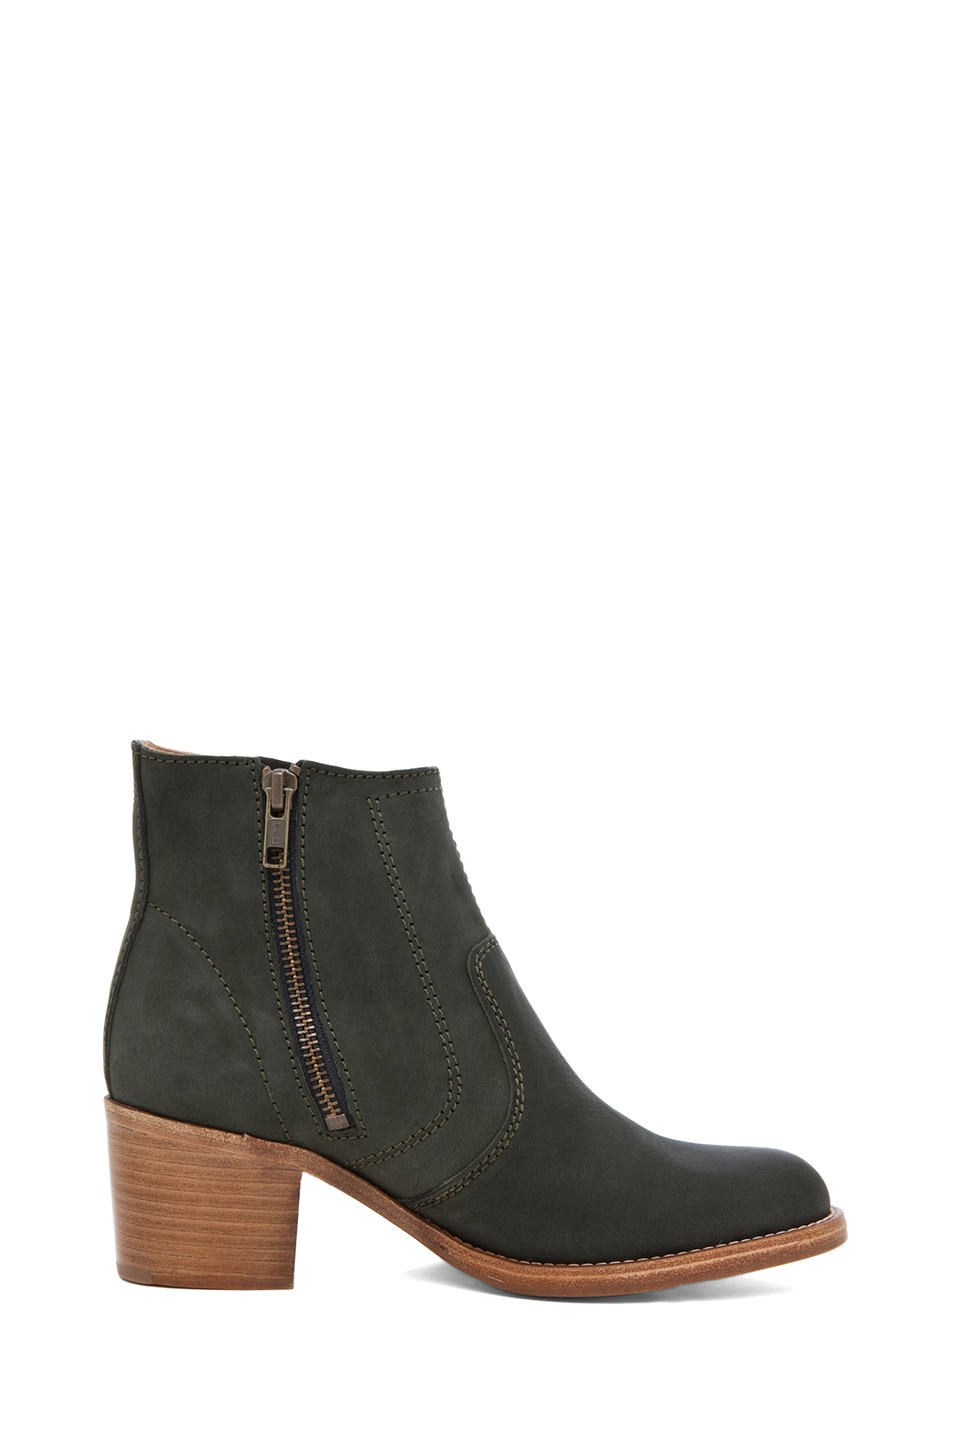 Image 5 of A.P.C. Camarguaise Boot in Vert Fonce